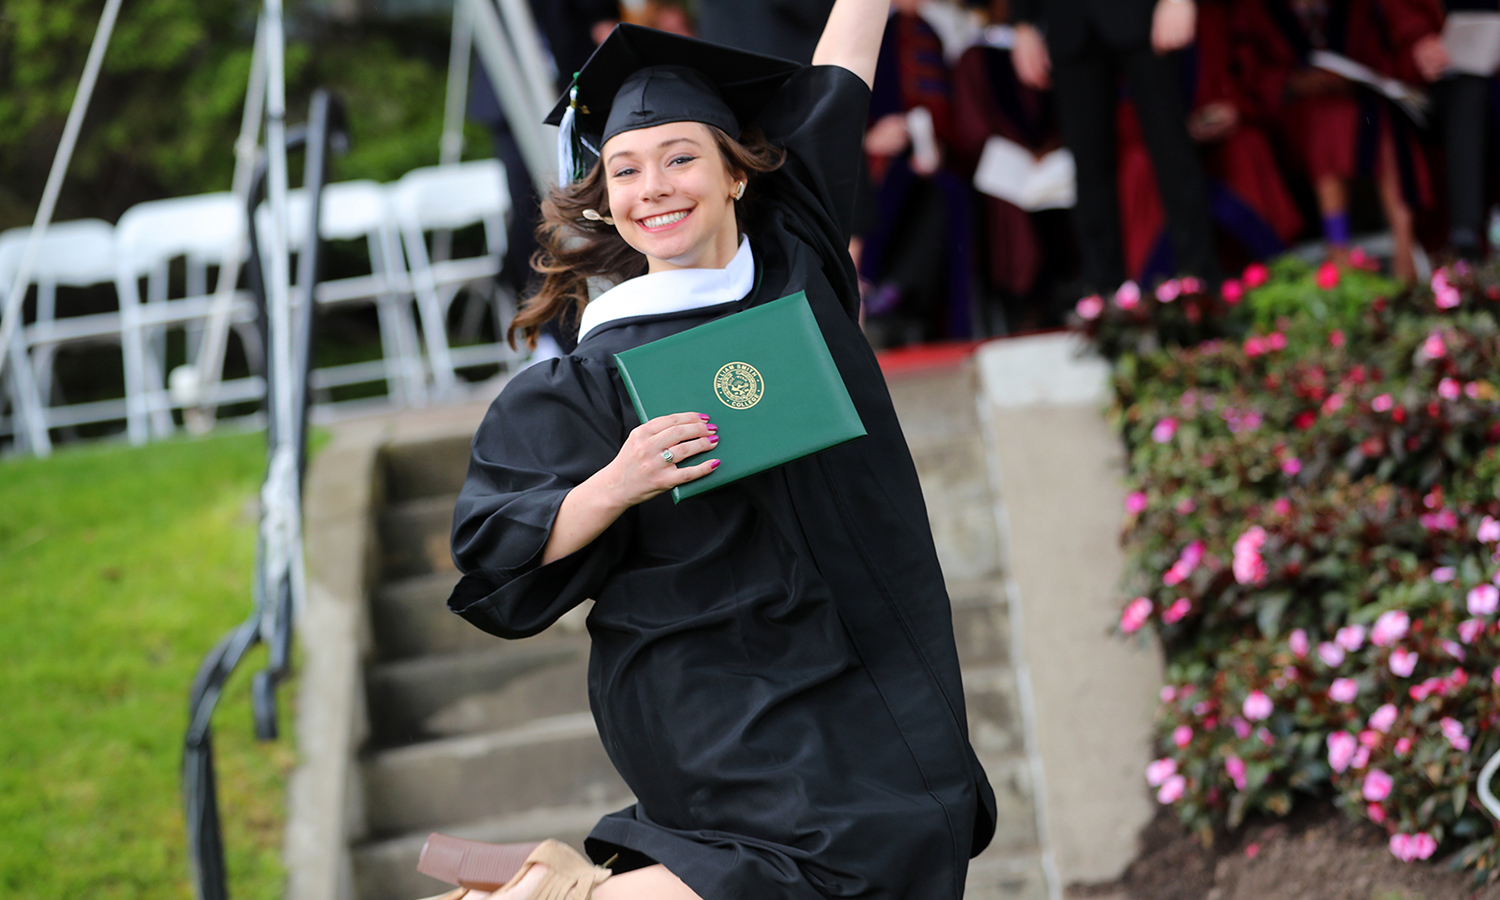 Tanina Urbanski '17 celebrates after receiving her diploma  during Commencement.